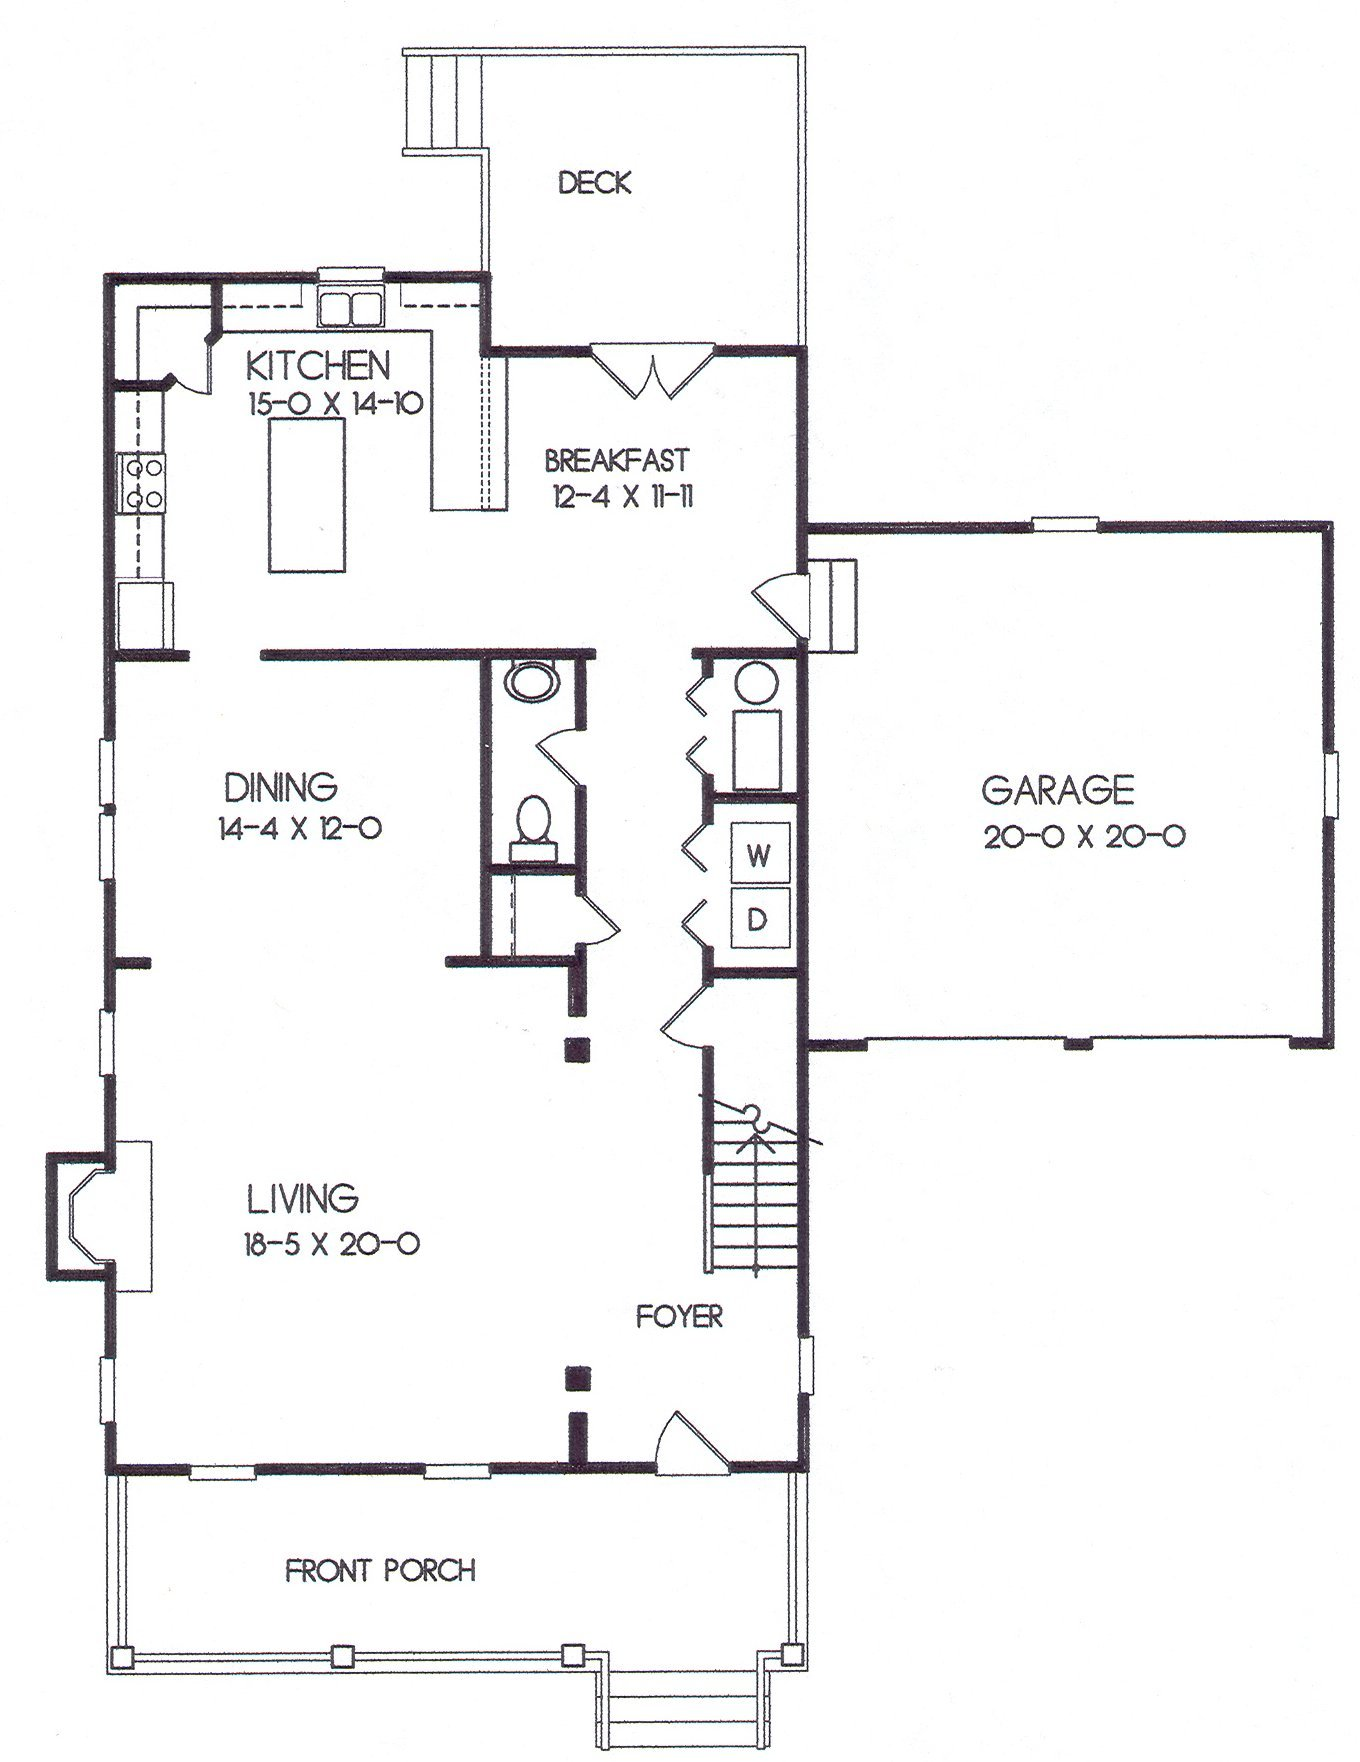 24-42 first floor plan